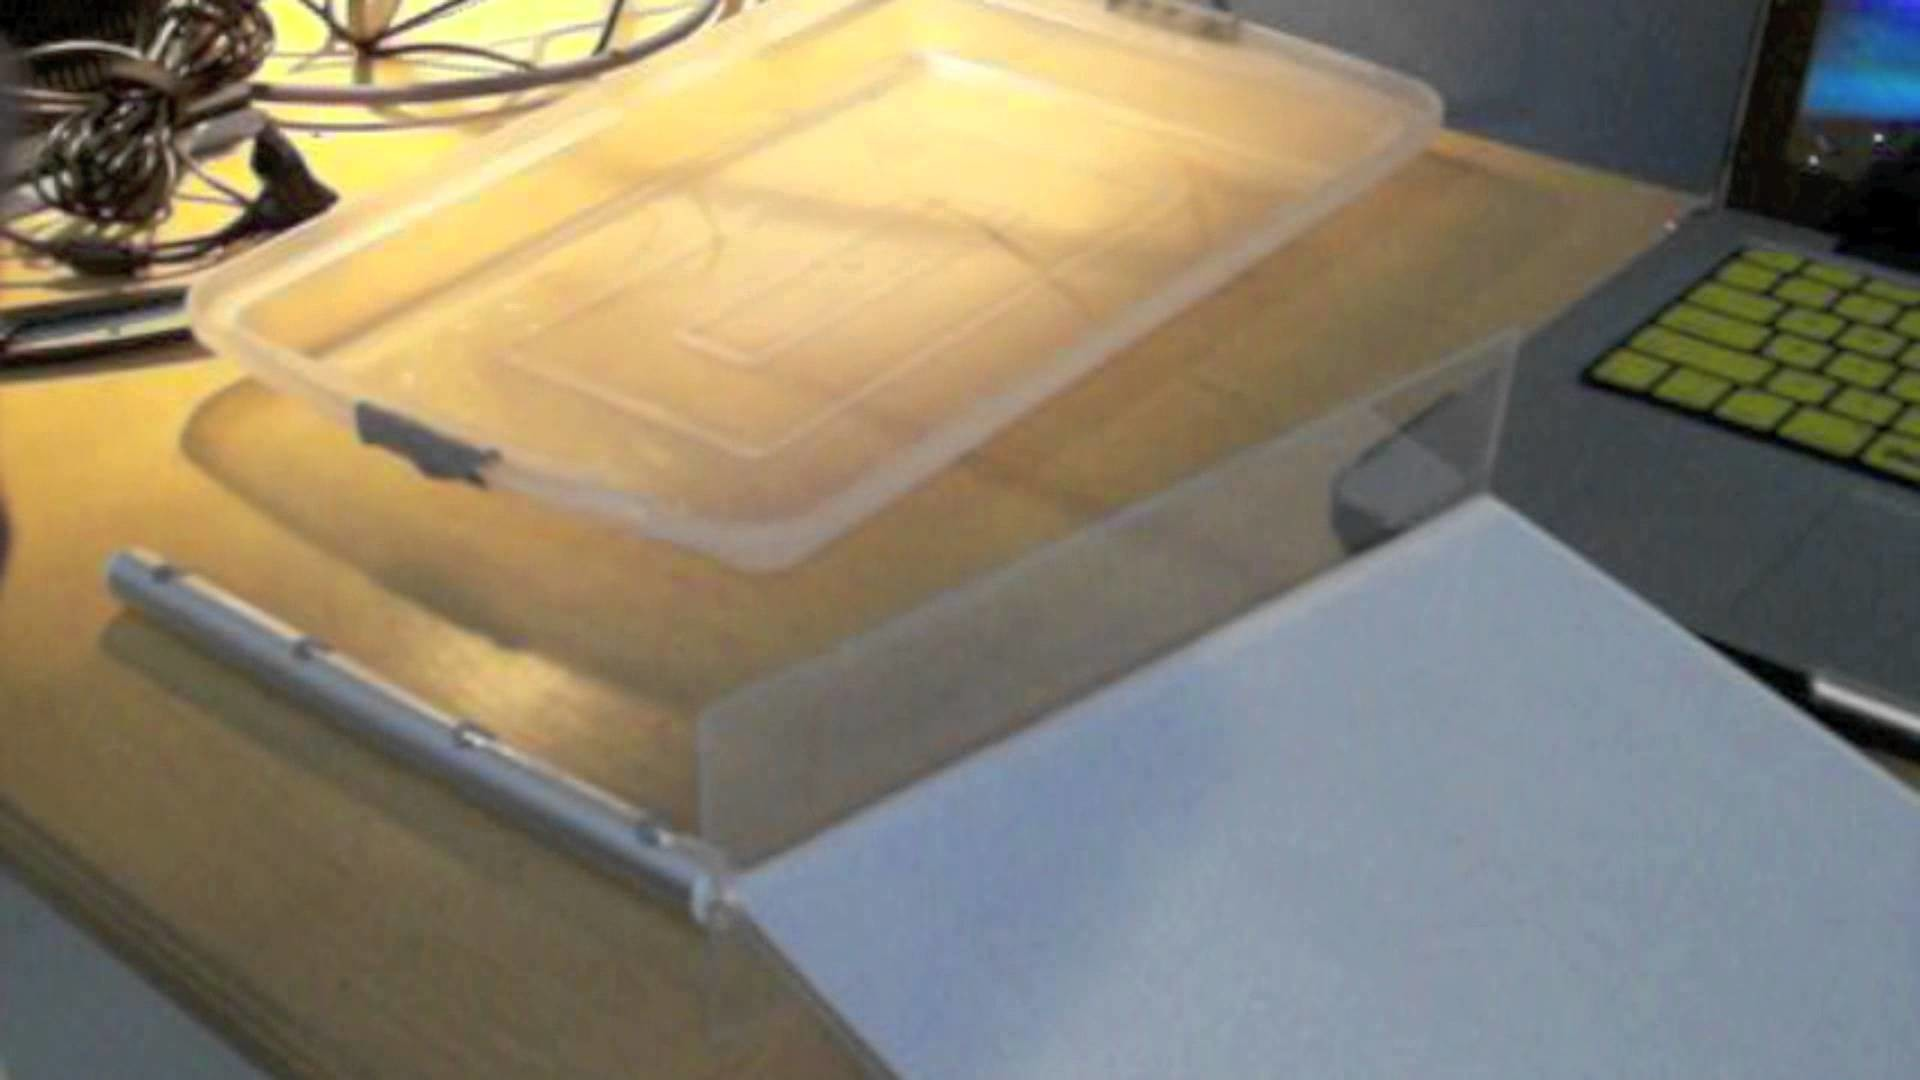 HOW TO MAKE A DIY LIGHT TRACING TABLE FOR DRAWING